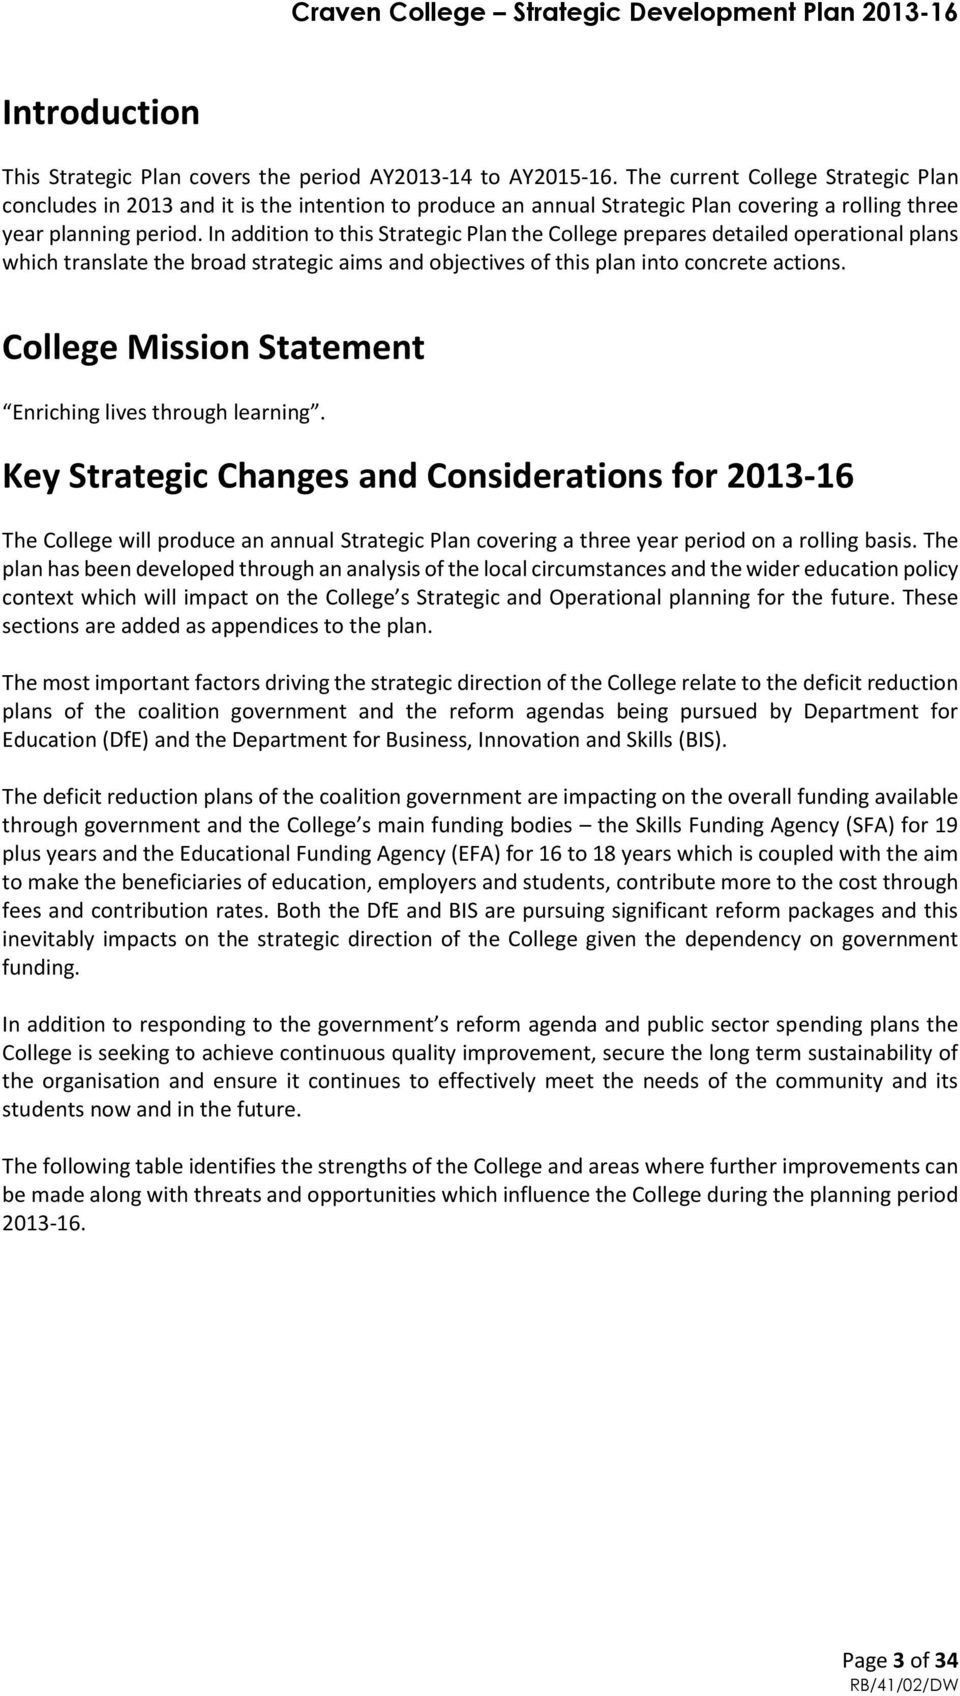 In addition to this Strategic Plan the College prepares detailed operational plans which translate the broad strategic aims and objectives of this plan into concrete actions.